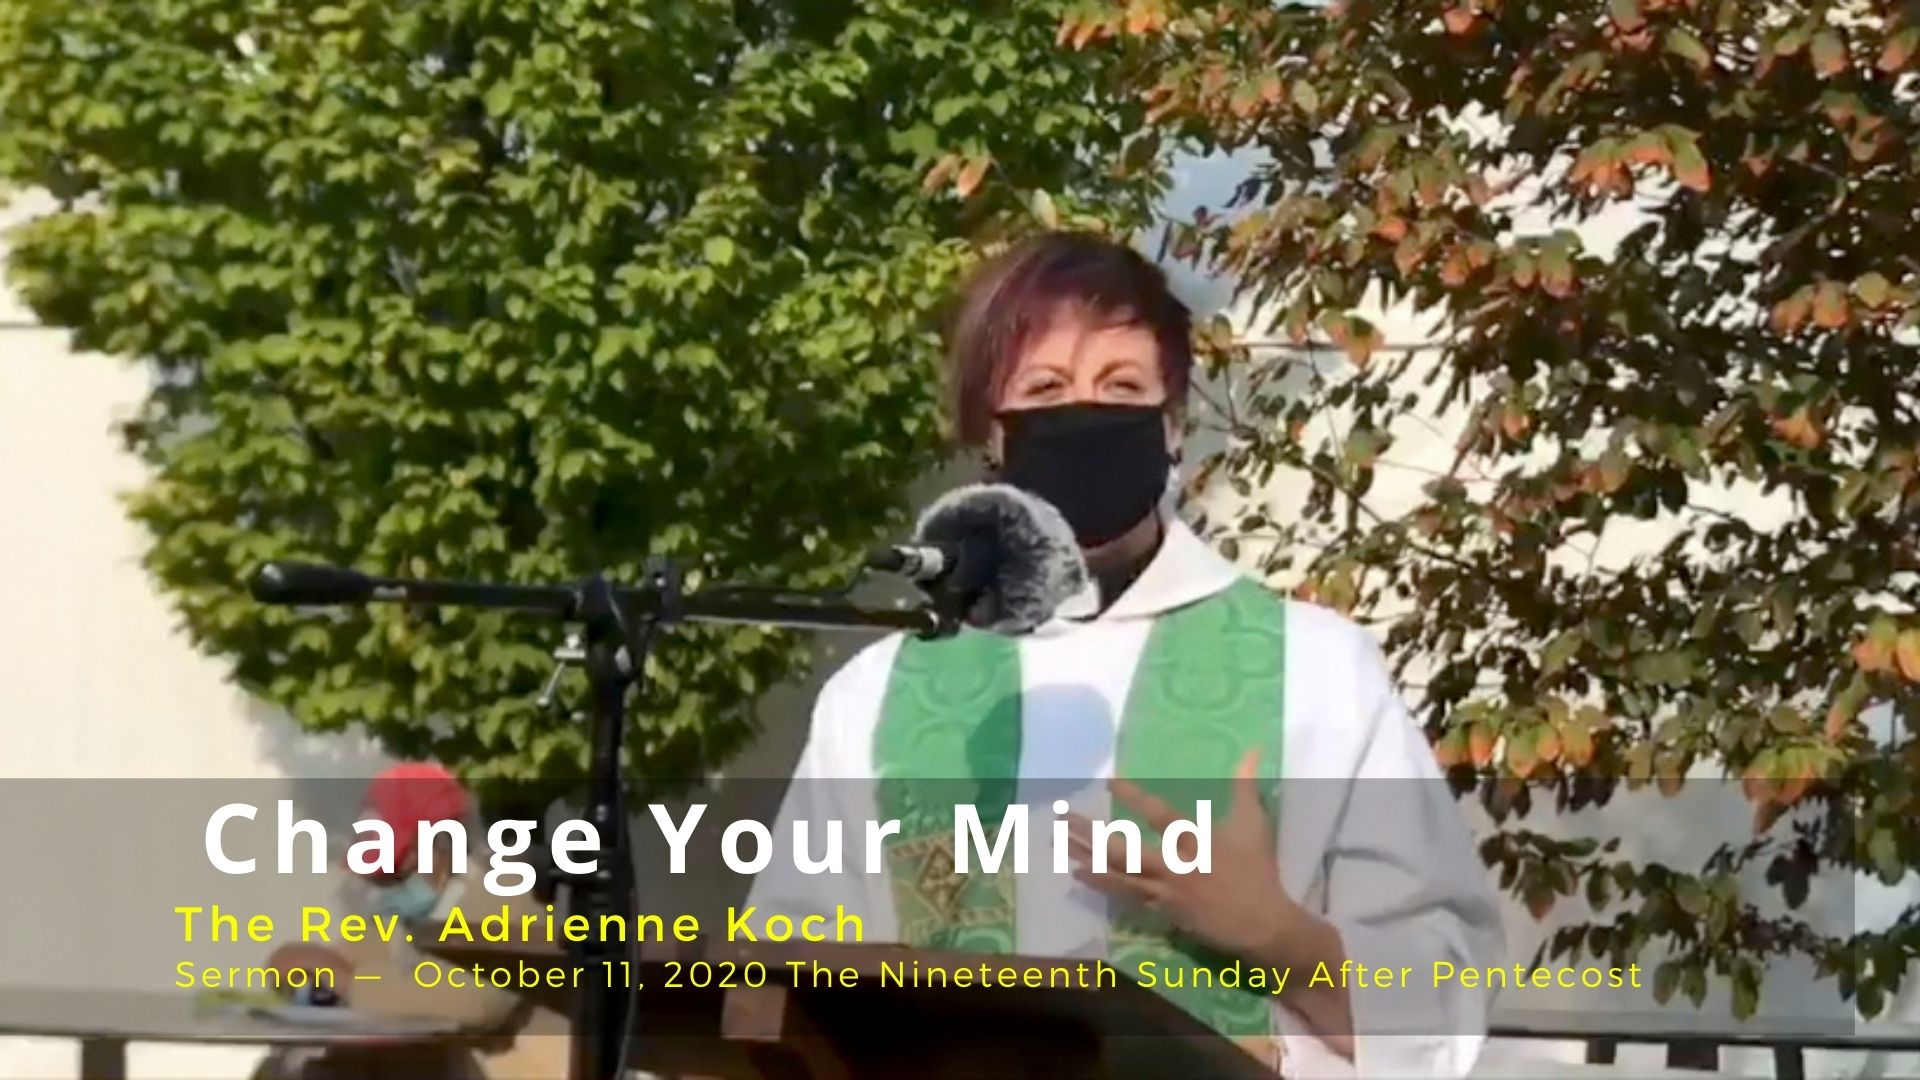 Sermon Podcast: Change Your Mind